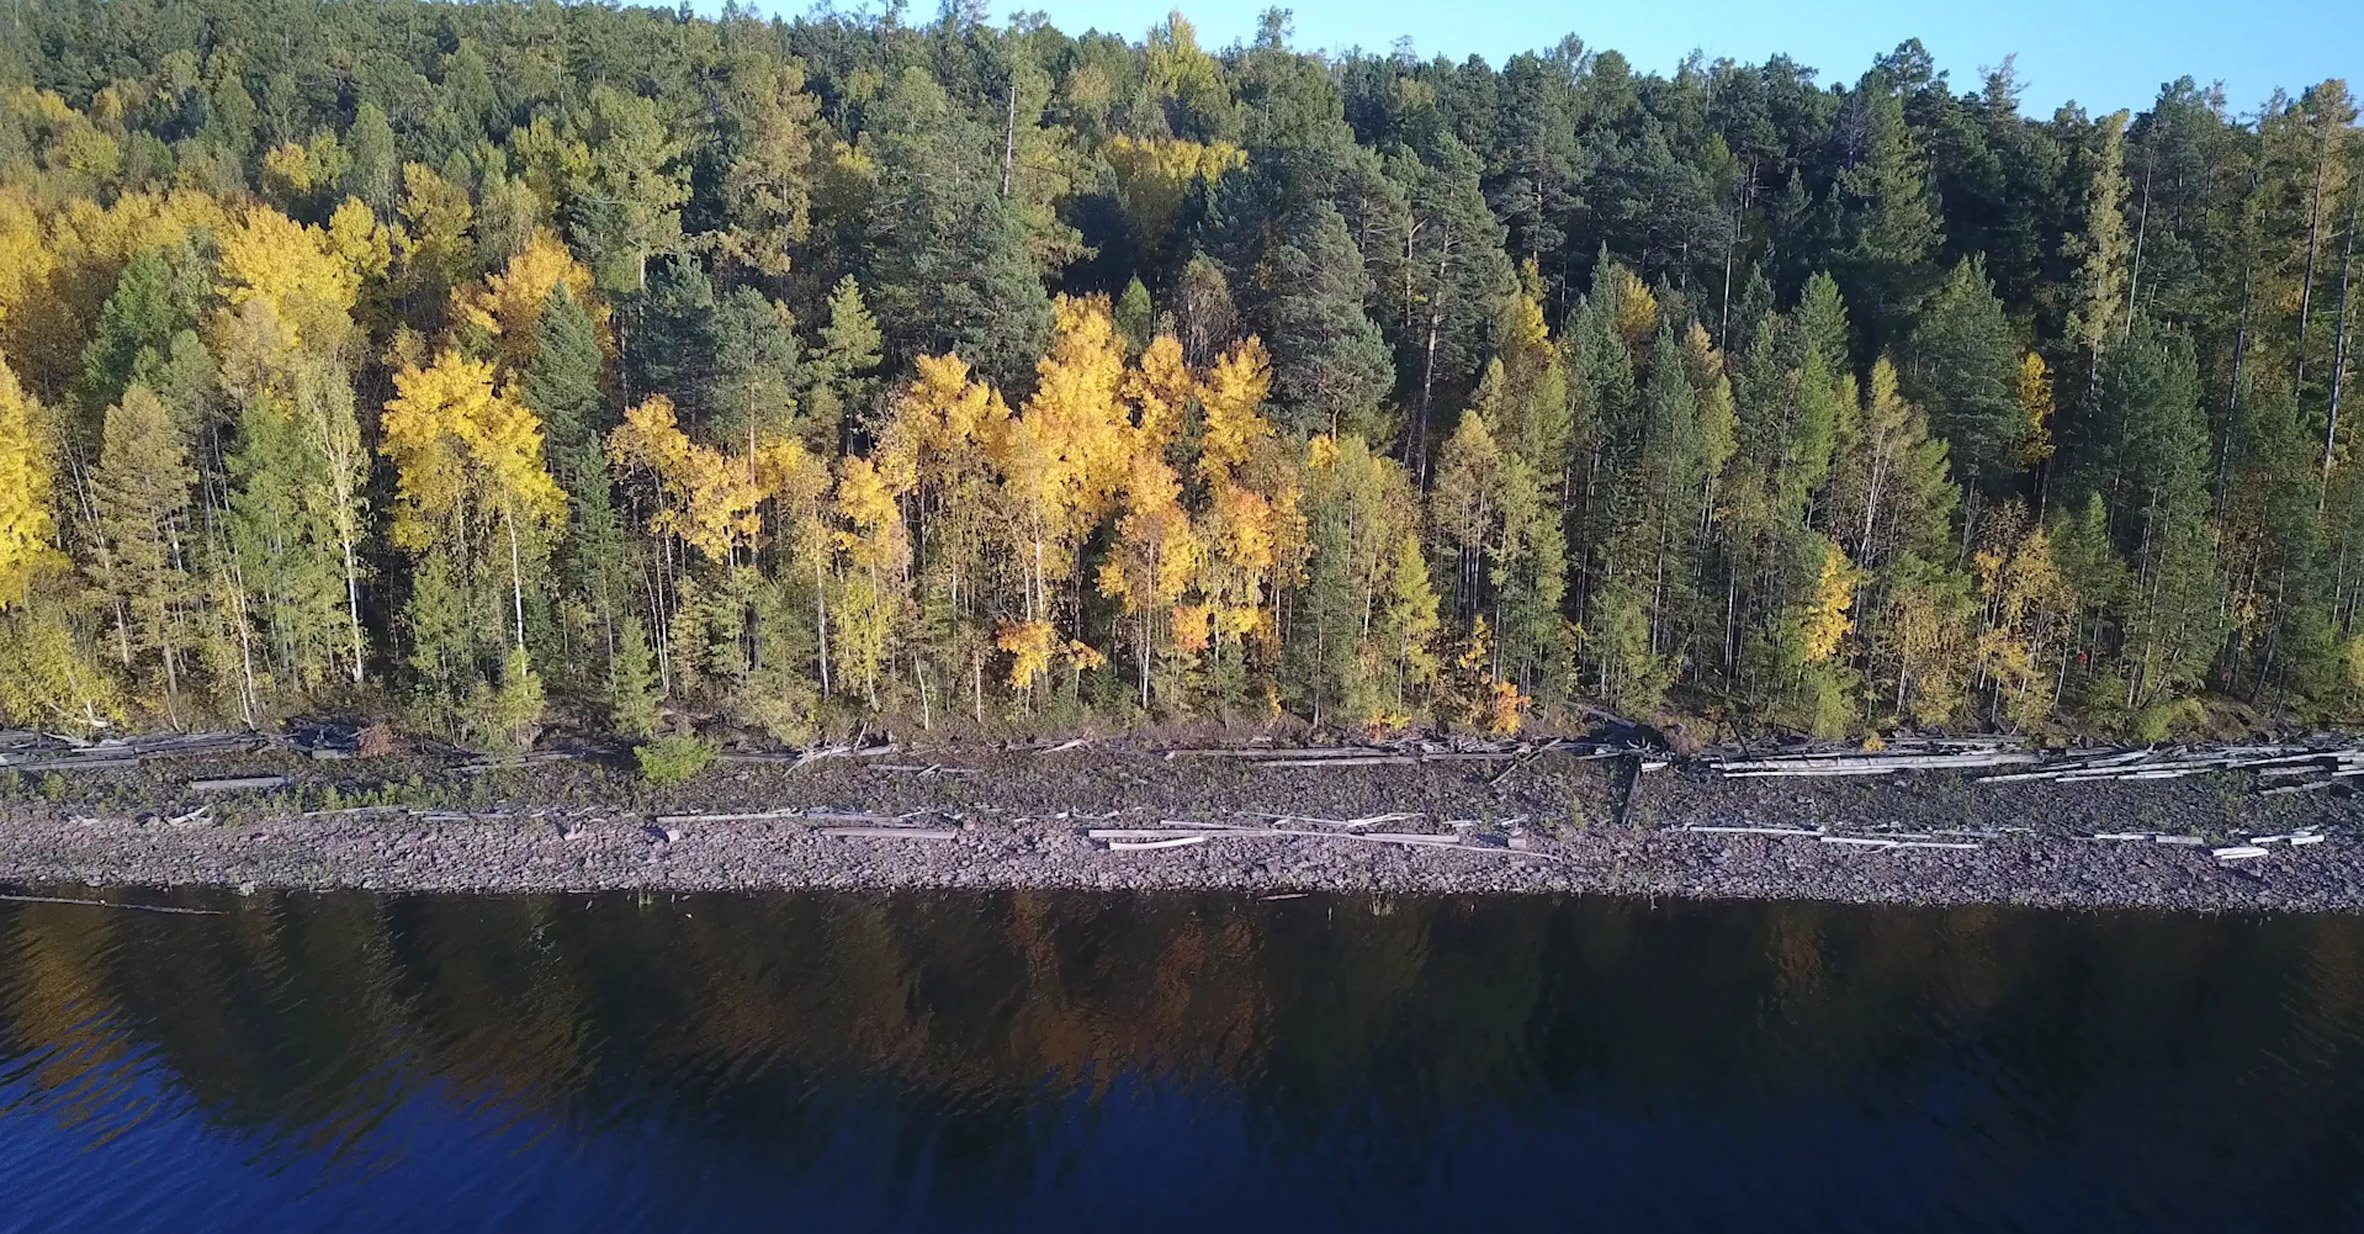 A forest in Siberian Russia next to a body of water